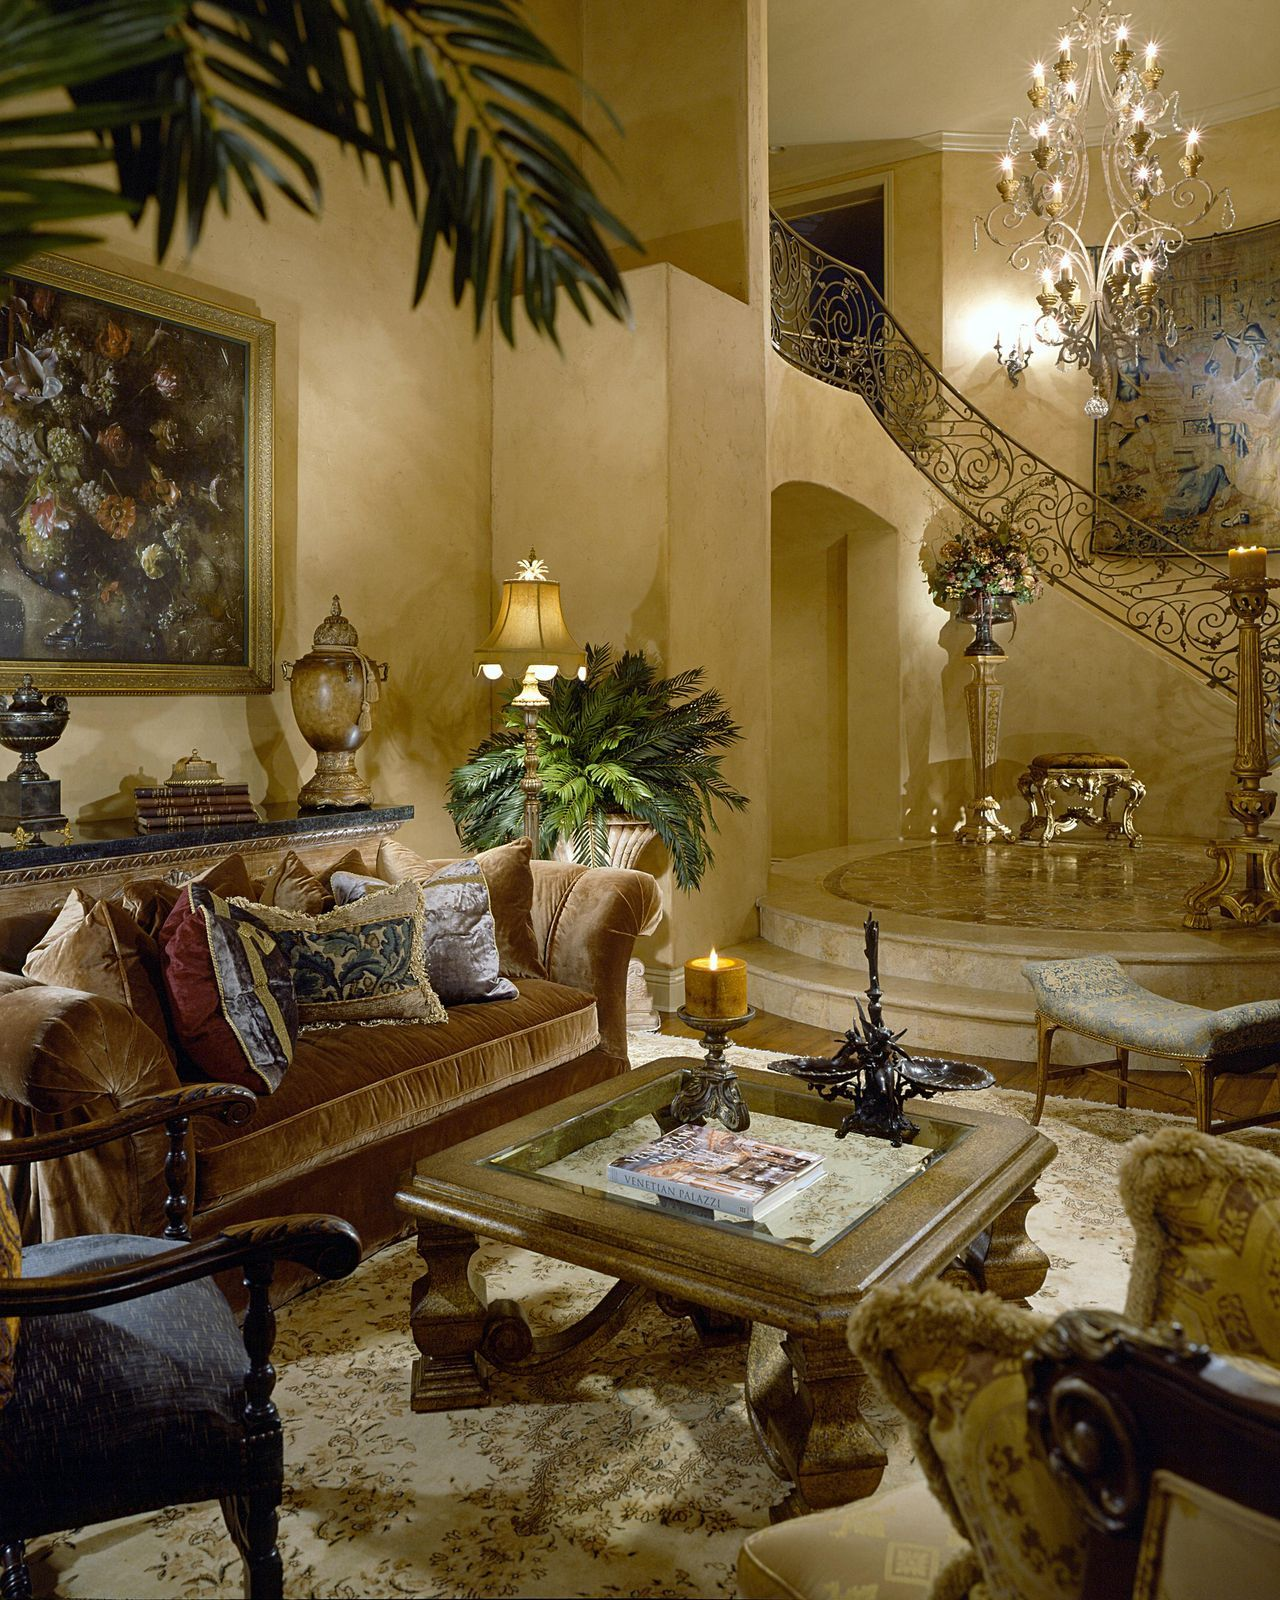 Mediterranean Home Design Interior: ELEGANT TUSCAN LIVING ROOM